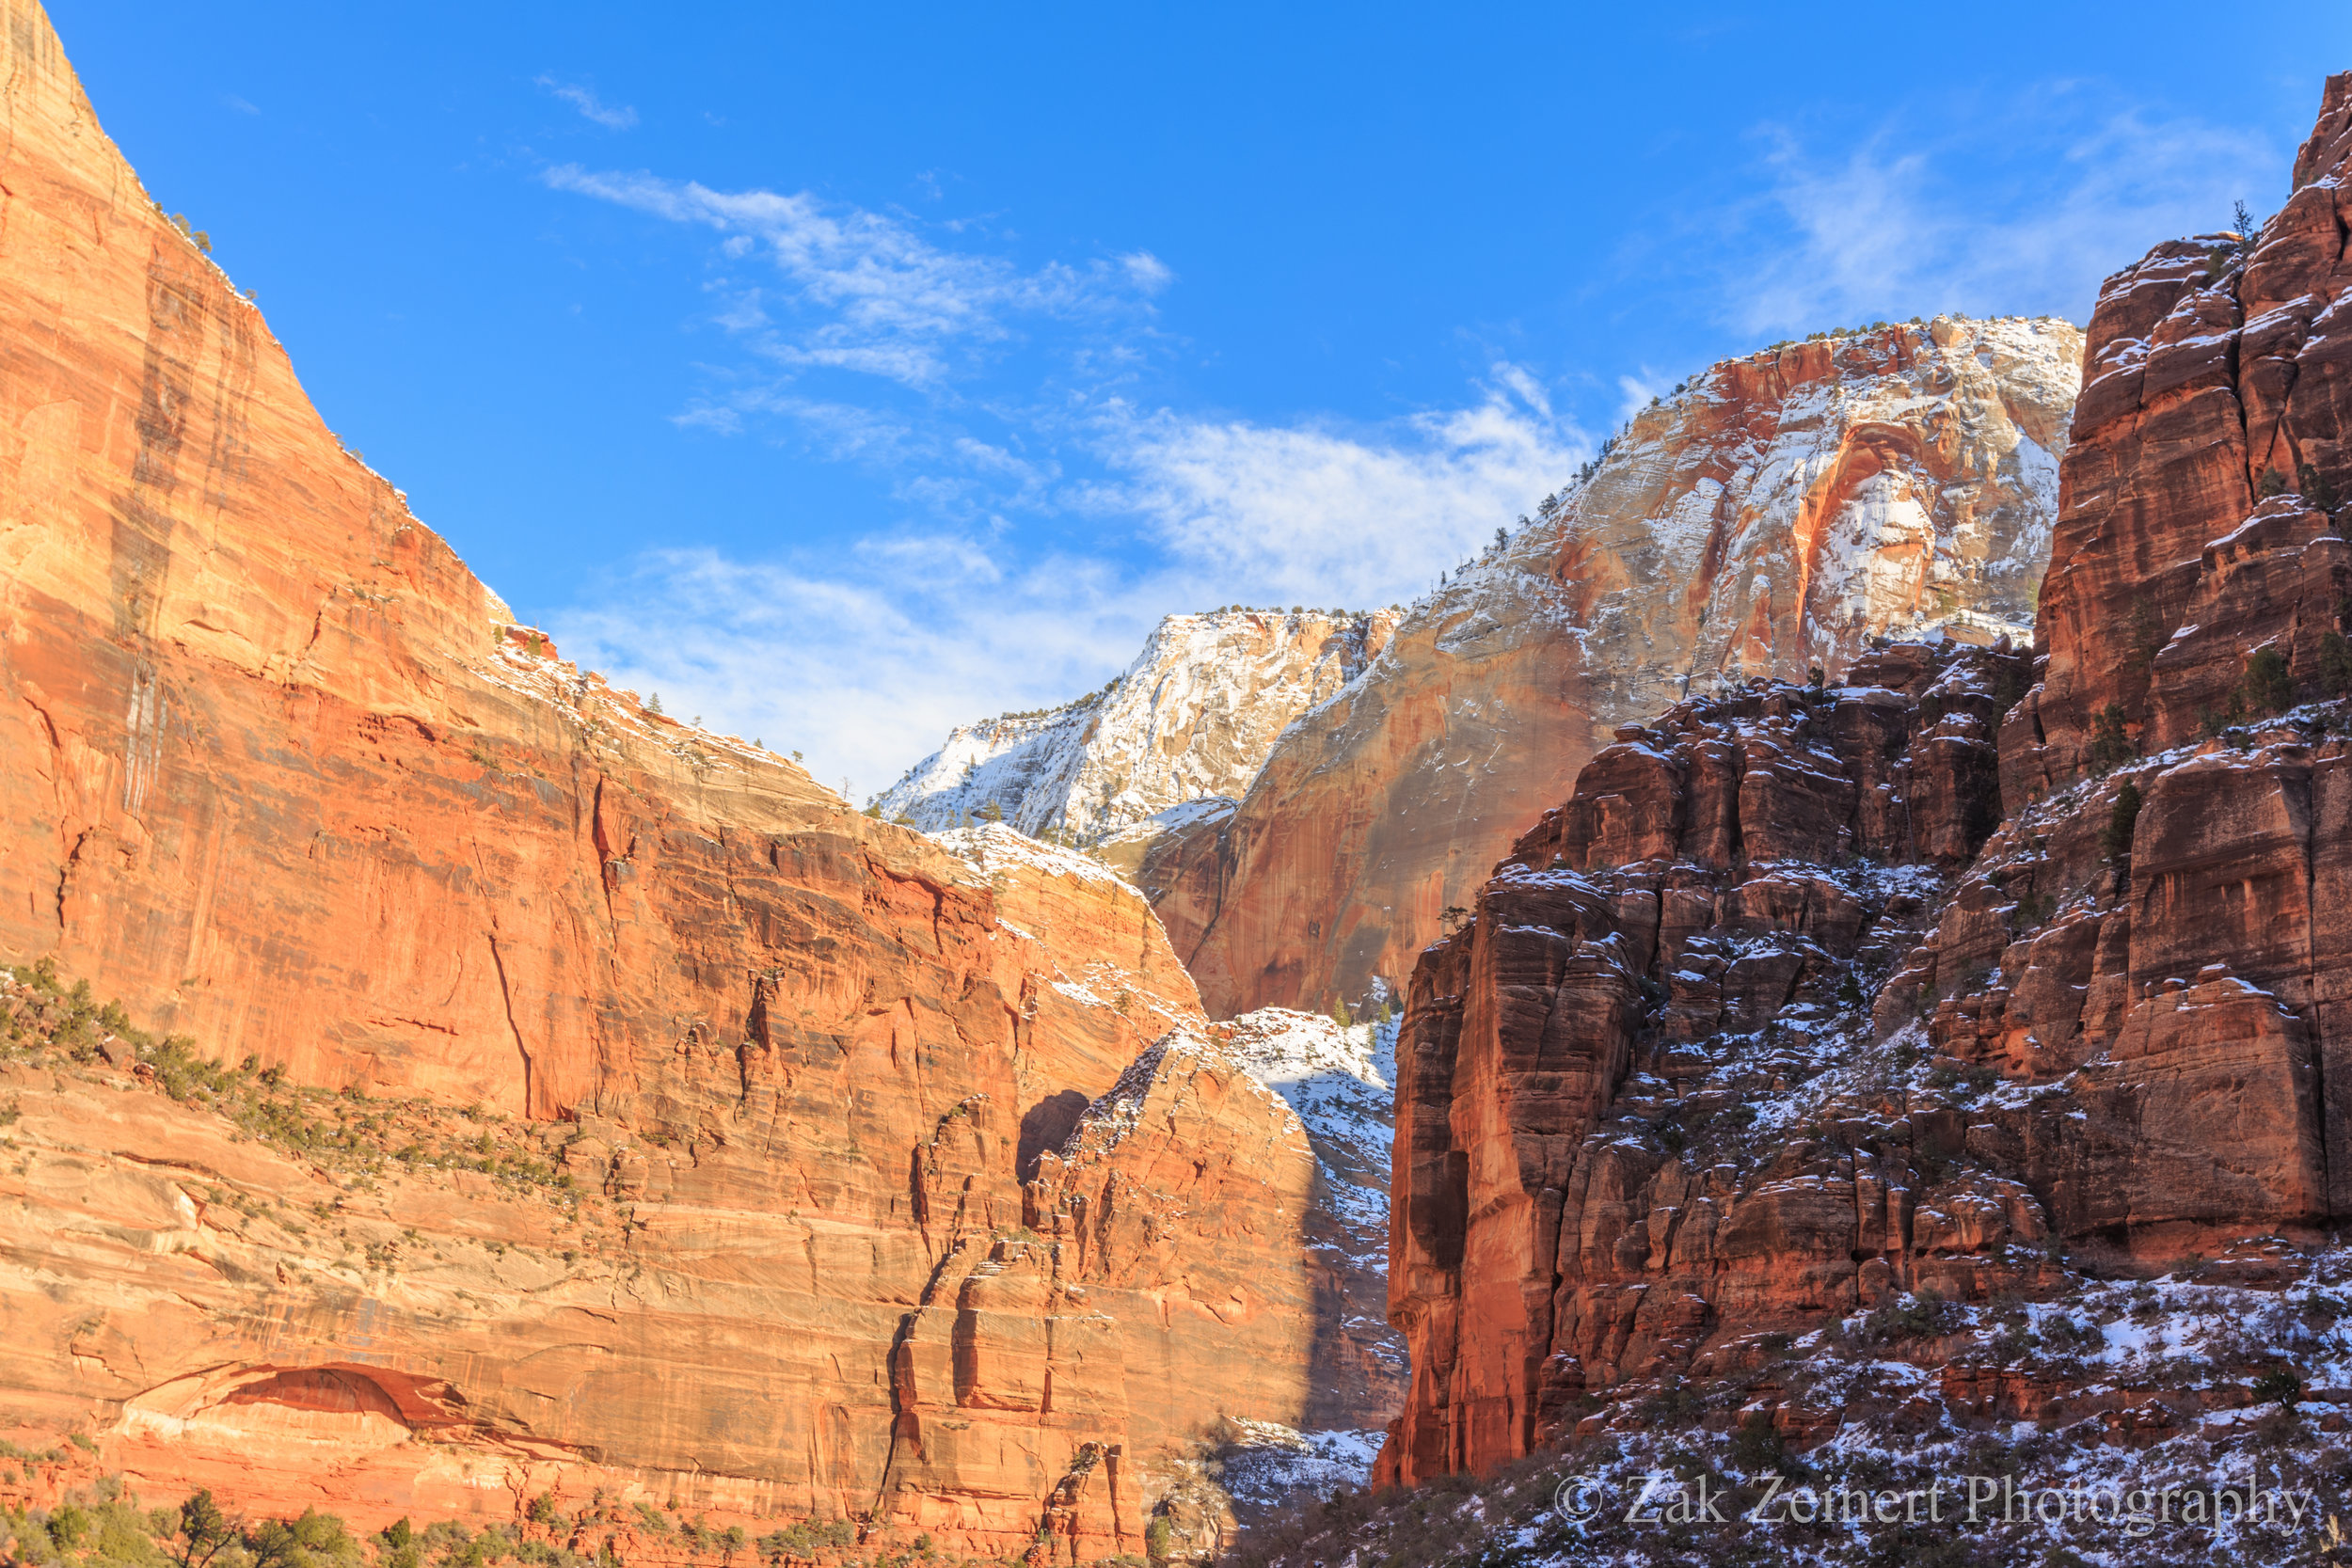 The cliff walls in Zion